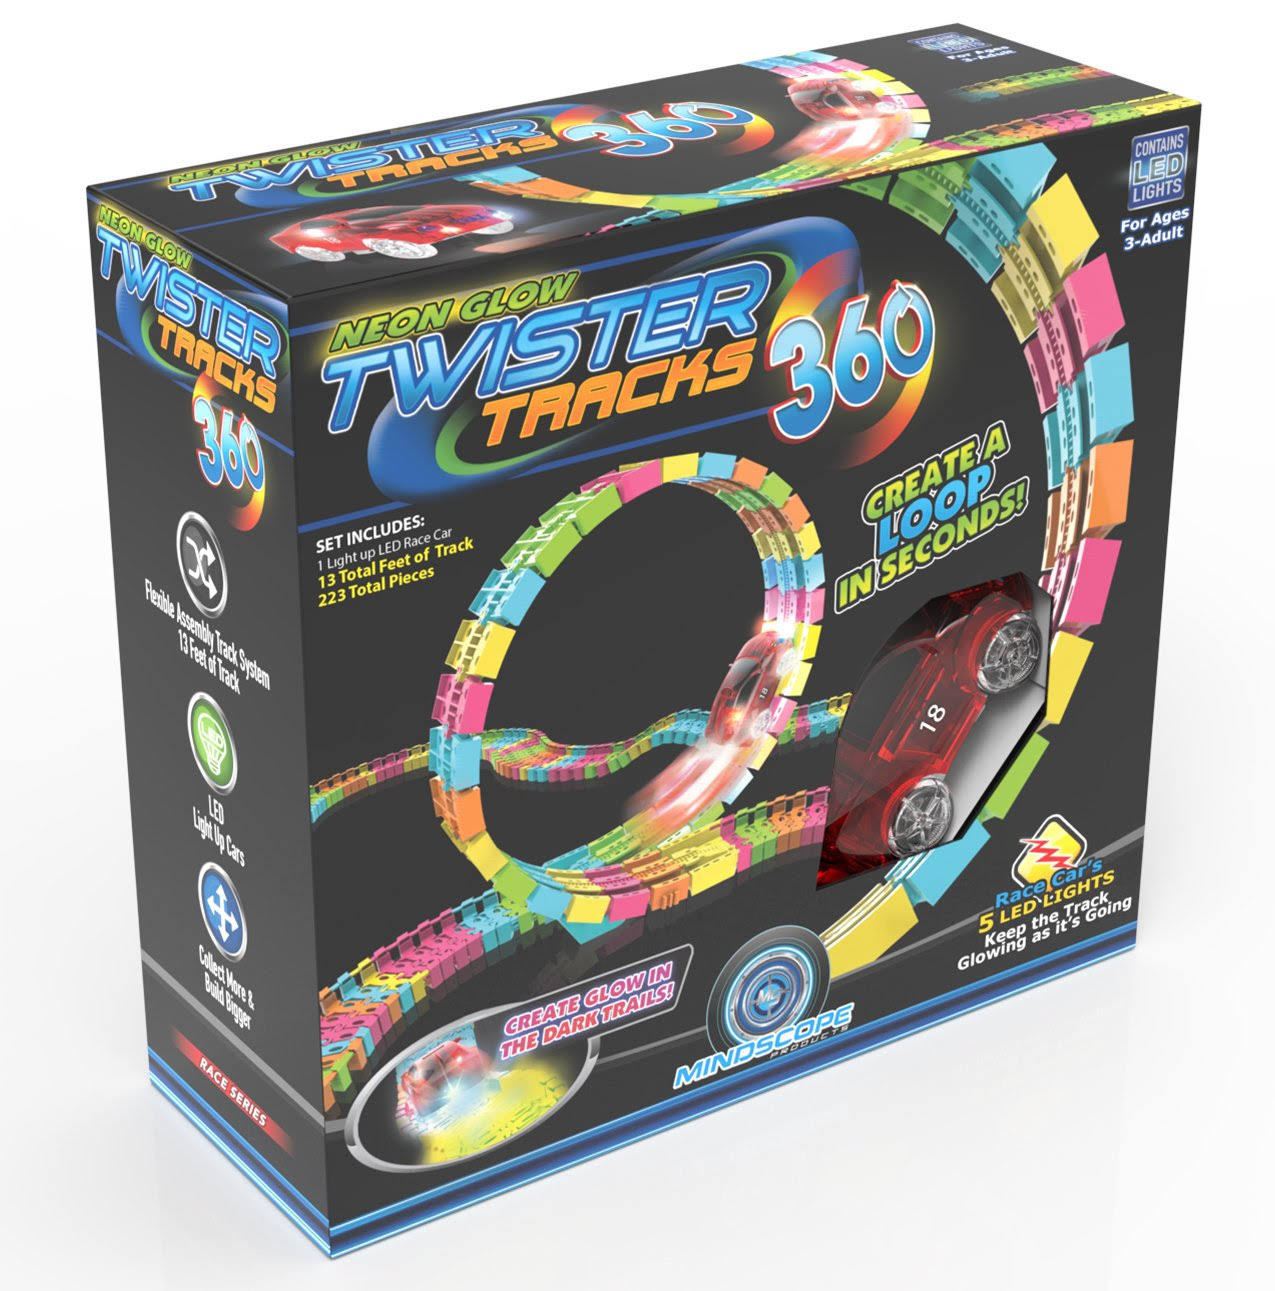 Mindscope Twister Tracks Trax 360 Loop Neon Glow in the Dark with Two Light-Up Pulse LED Vehicles Sports Car Series Playset